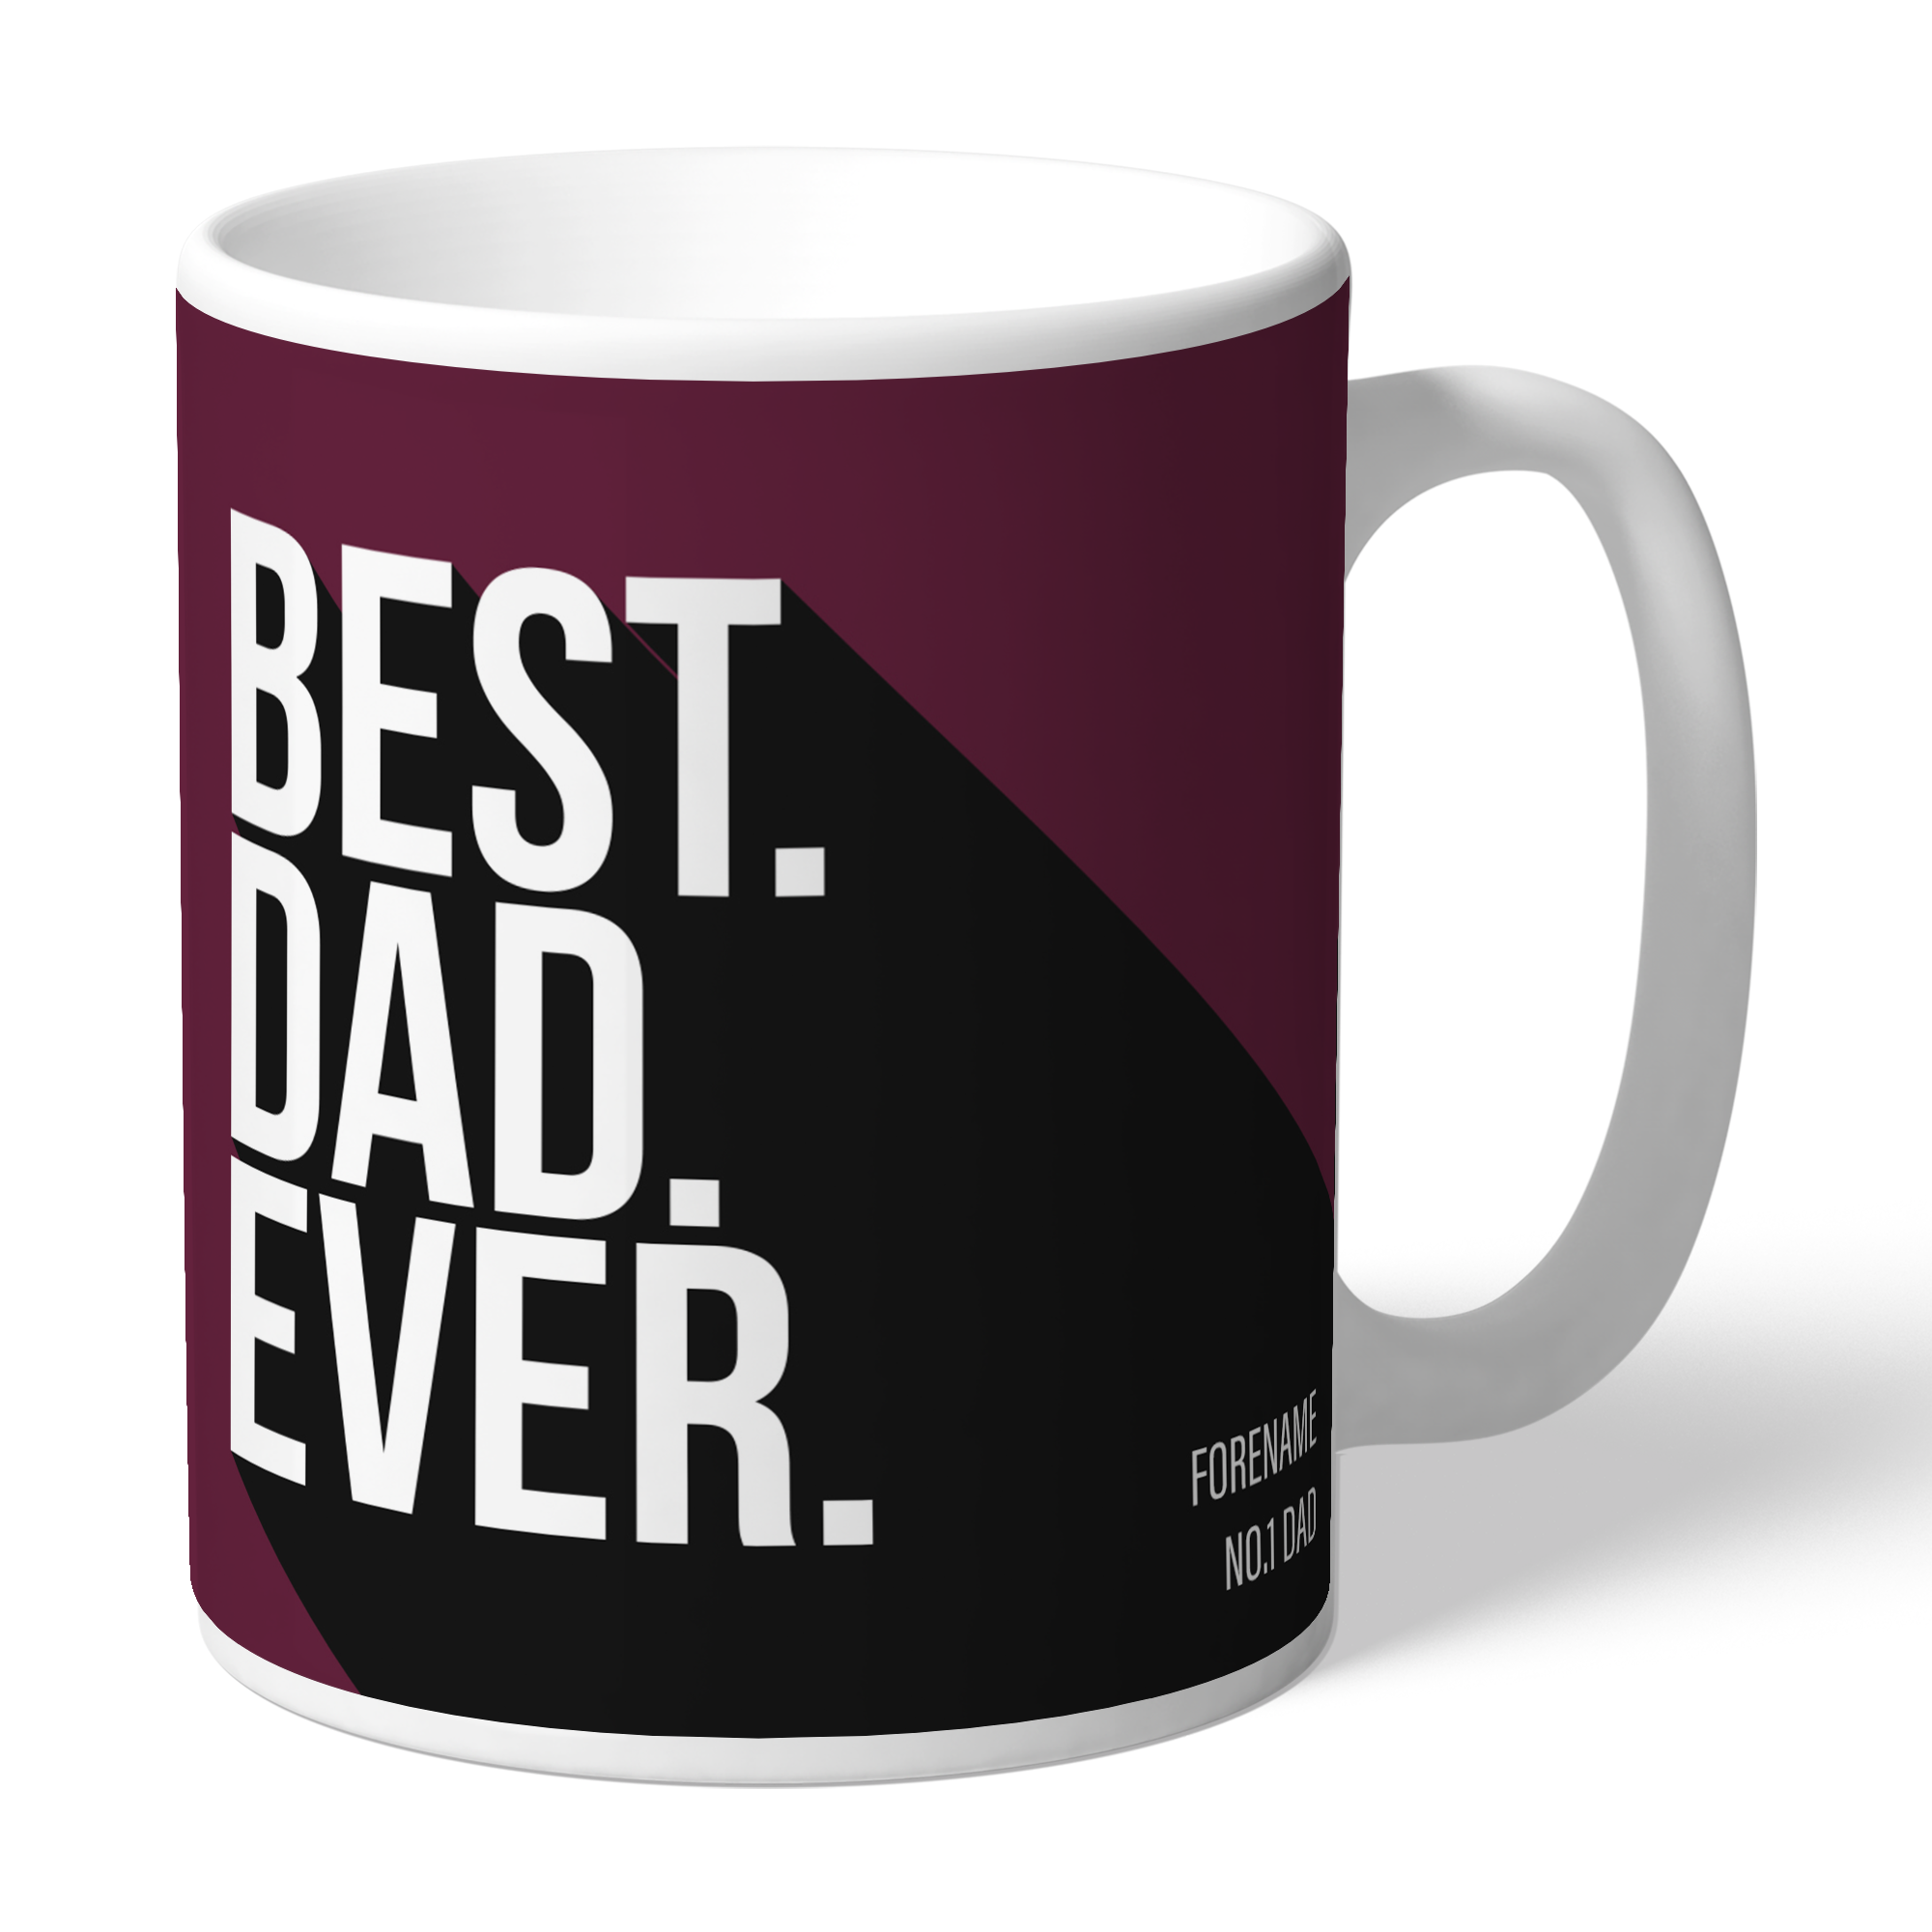 Burnley FC Best Dad Ever Mug